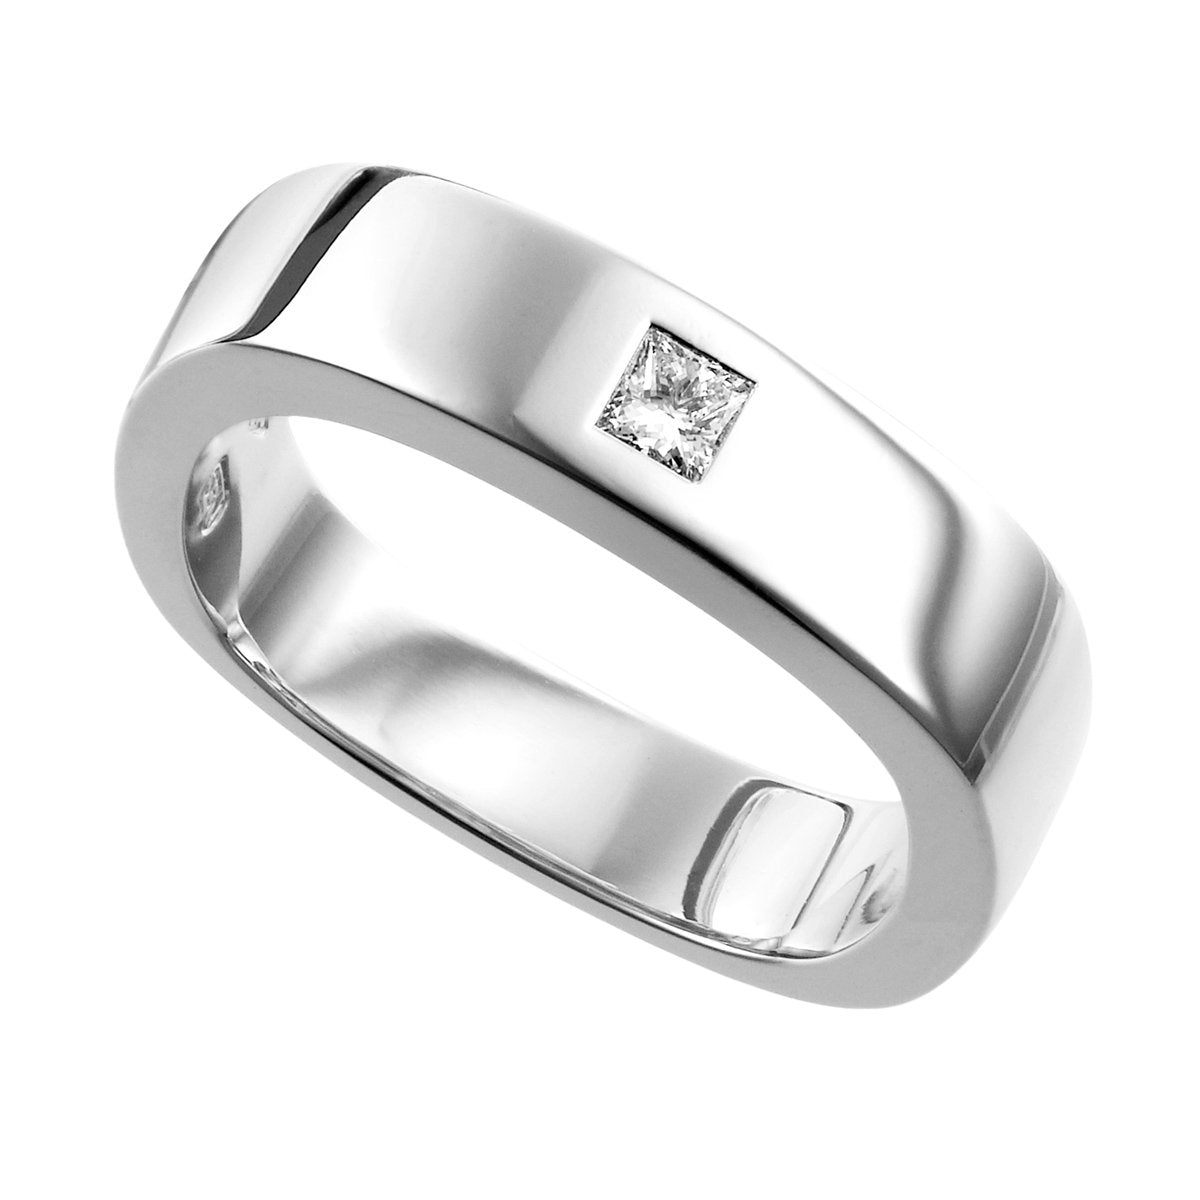 Quadri ring with princess cut diamond